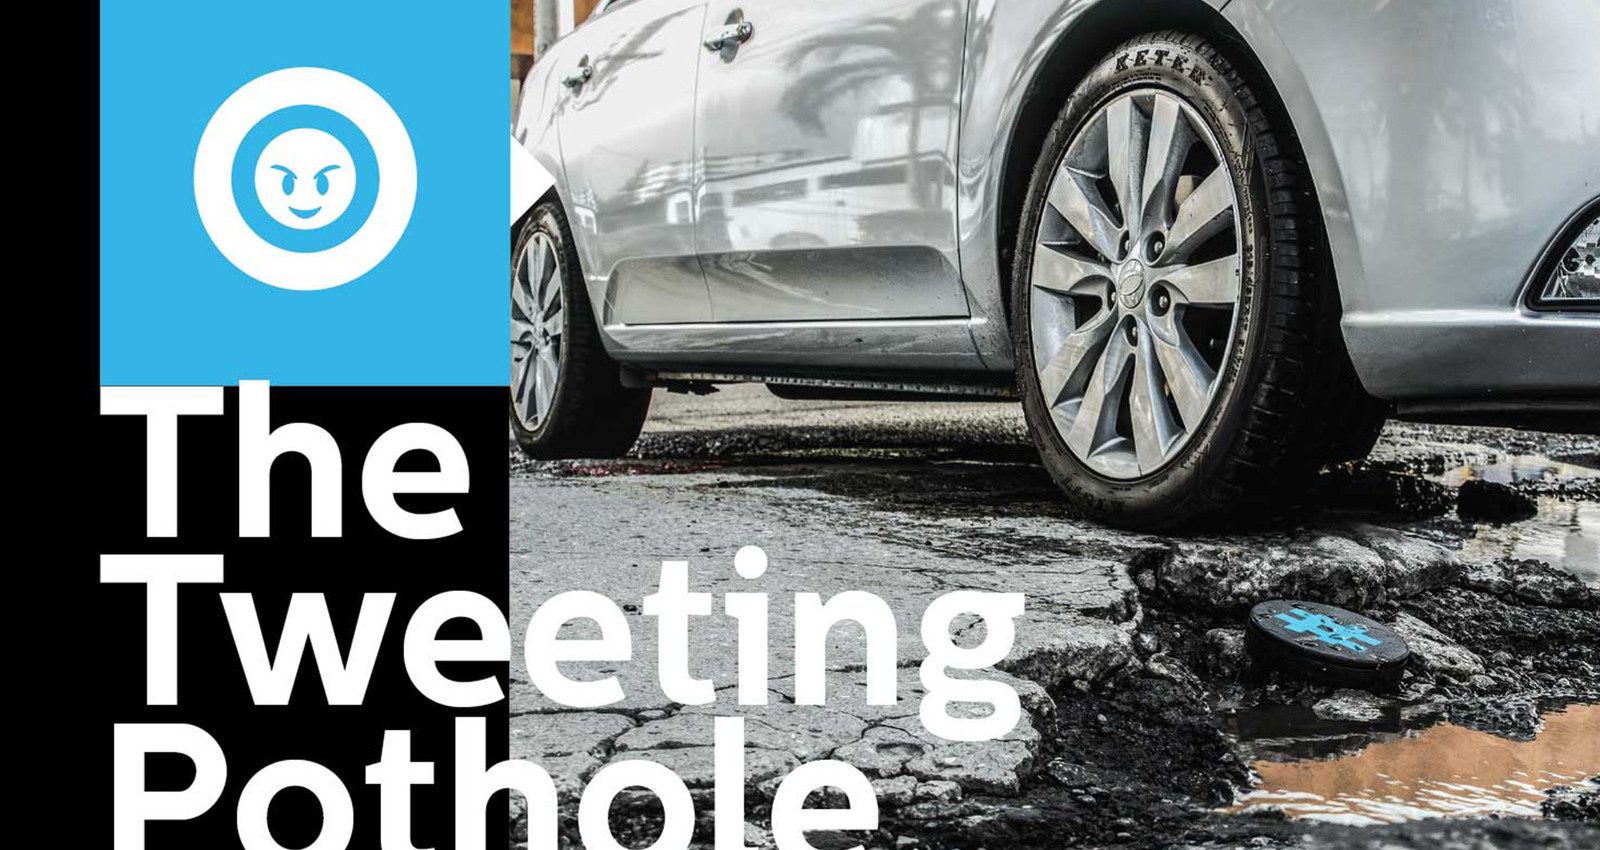 The Tweeting Pothole